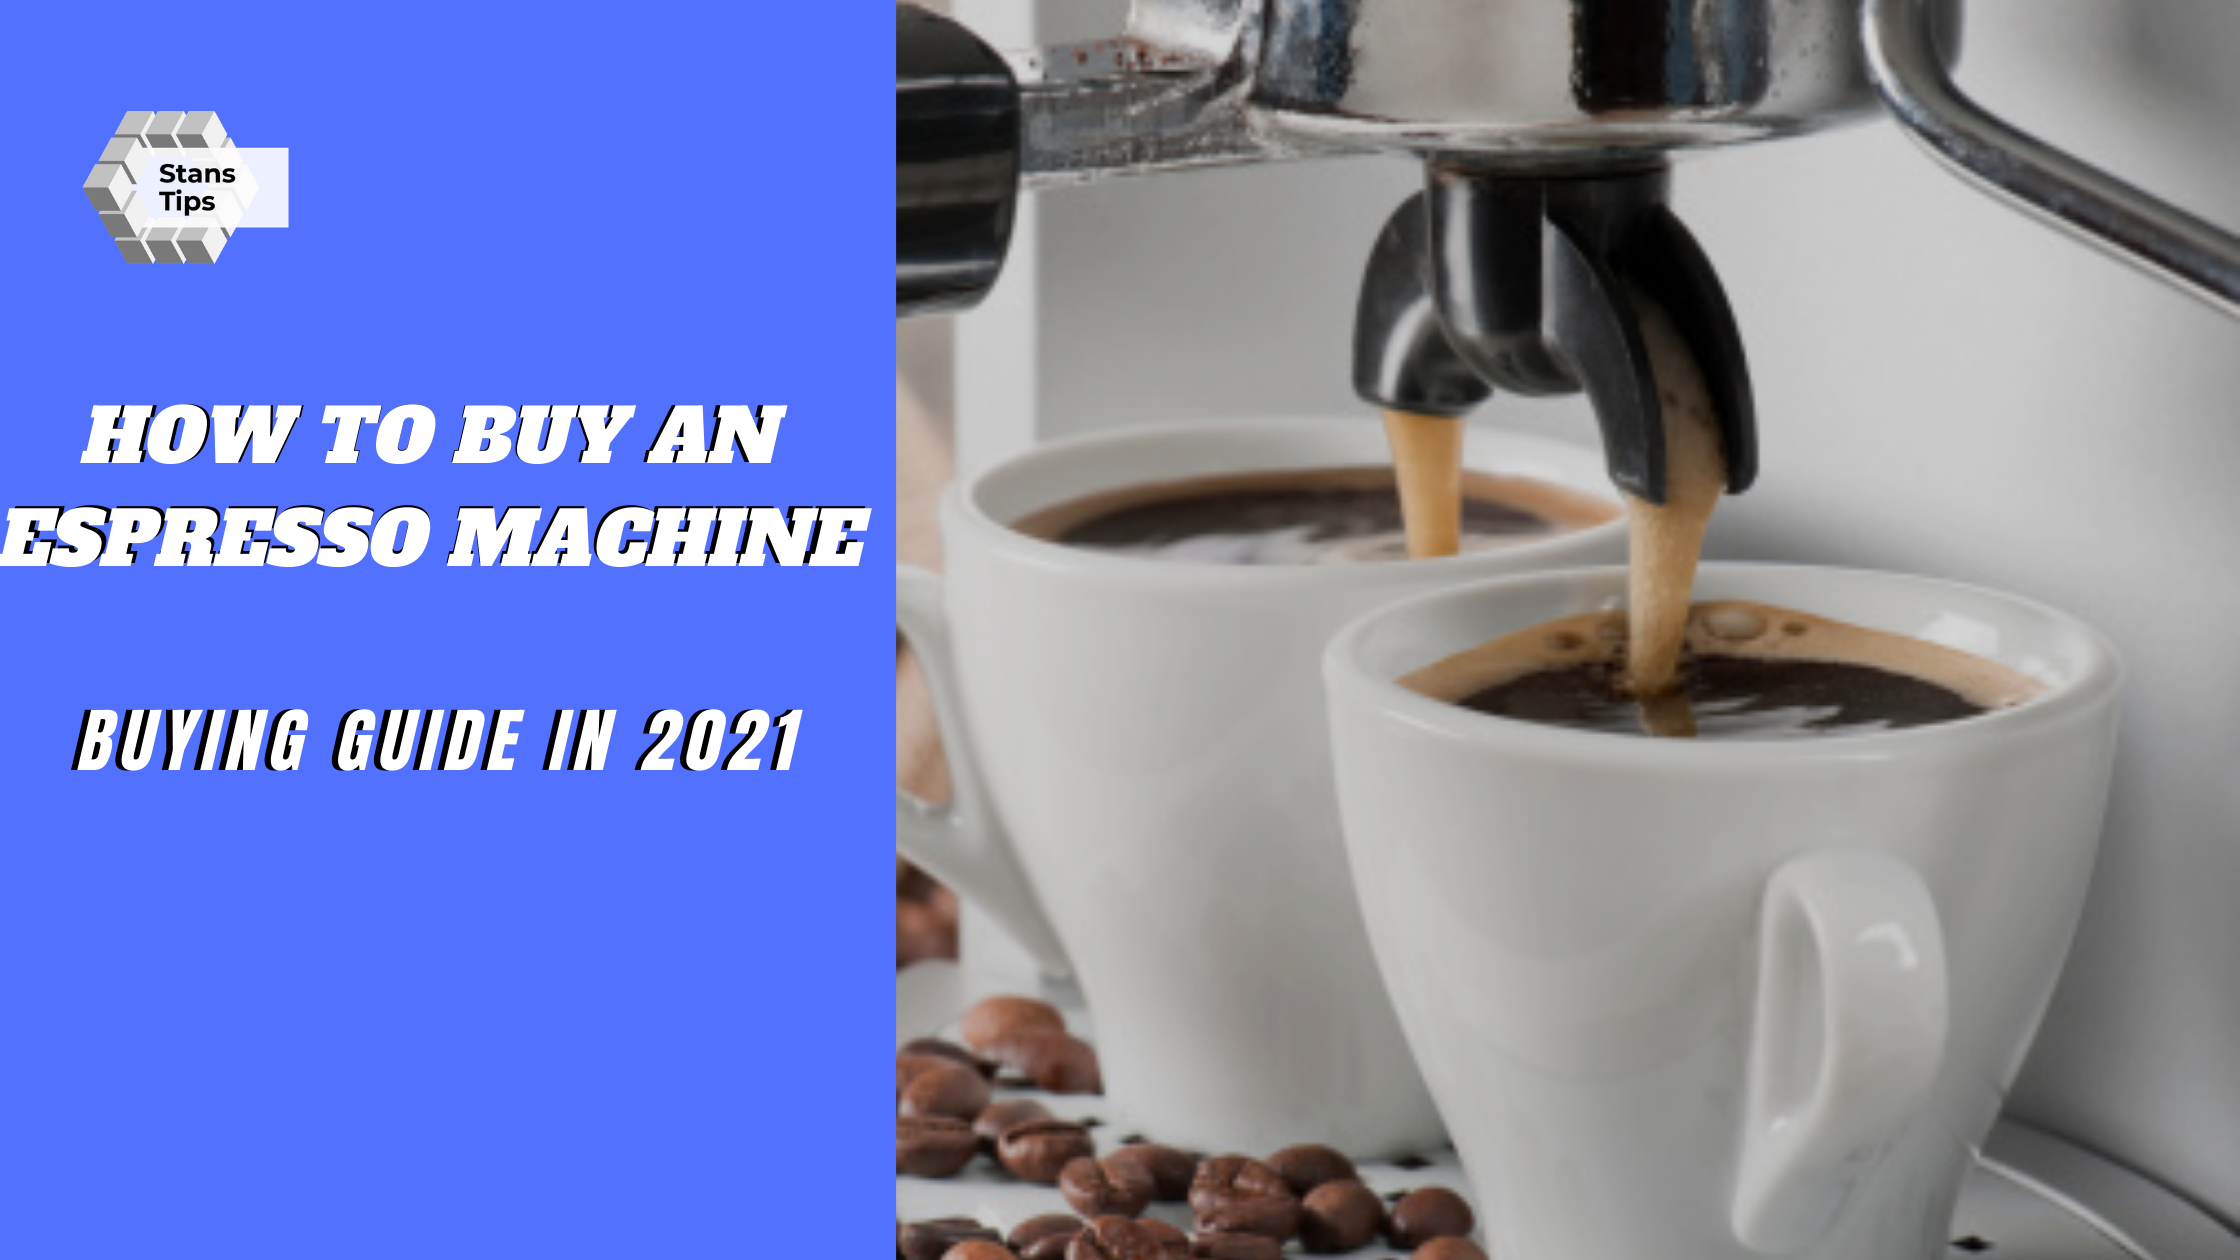 How to buy an espresso machine in 2021